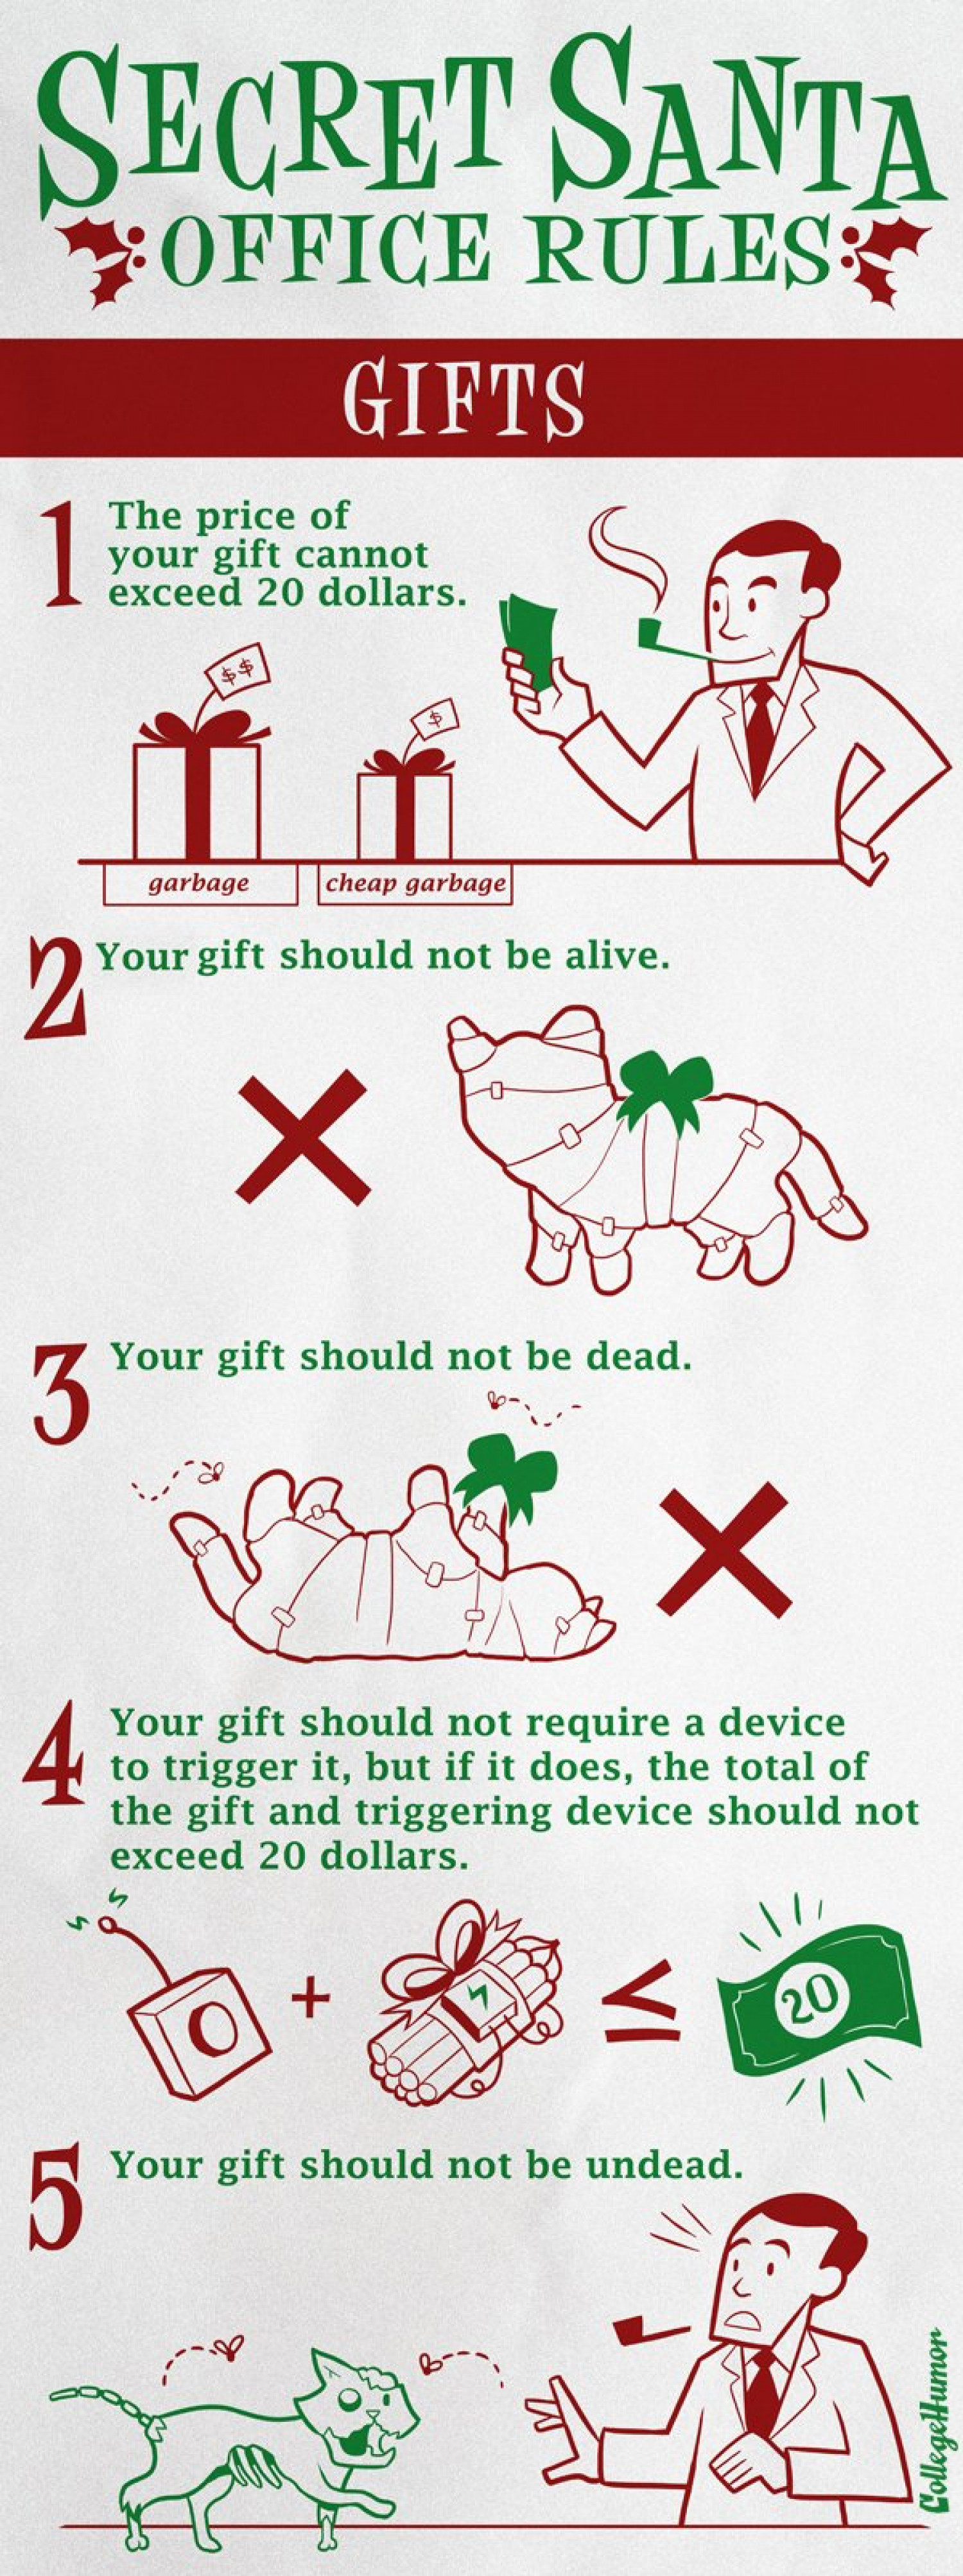 Secret Santa: Office Rules  Infographic